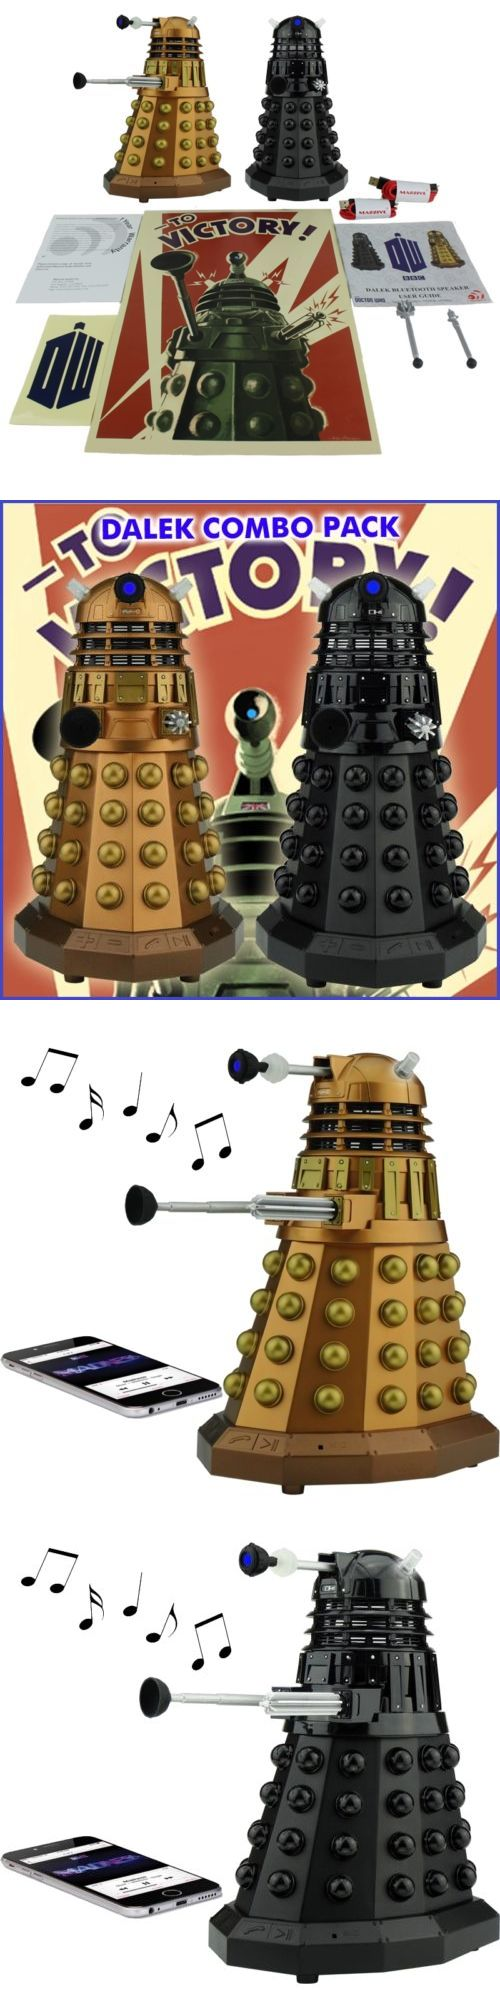 Bluetooth Handsfree Car Kits: Doctor Who Dalek Portable Bluetooth Speaker Combo Pack With Leds And Sound Effects BUY IT NOW ONLY: $89.95